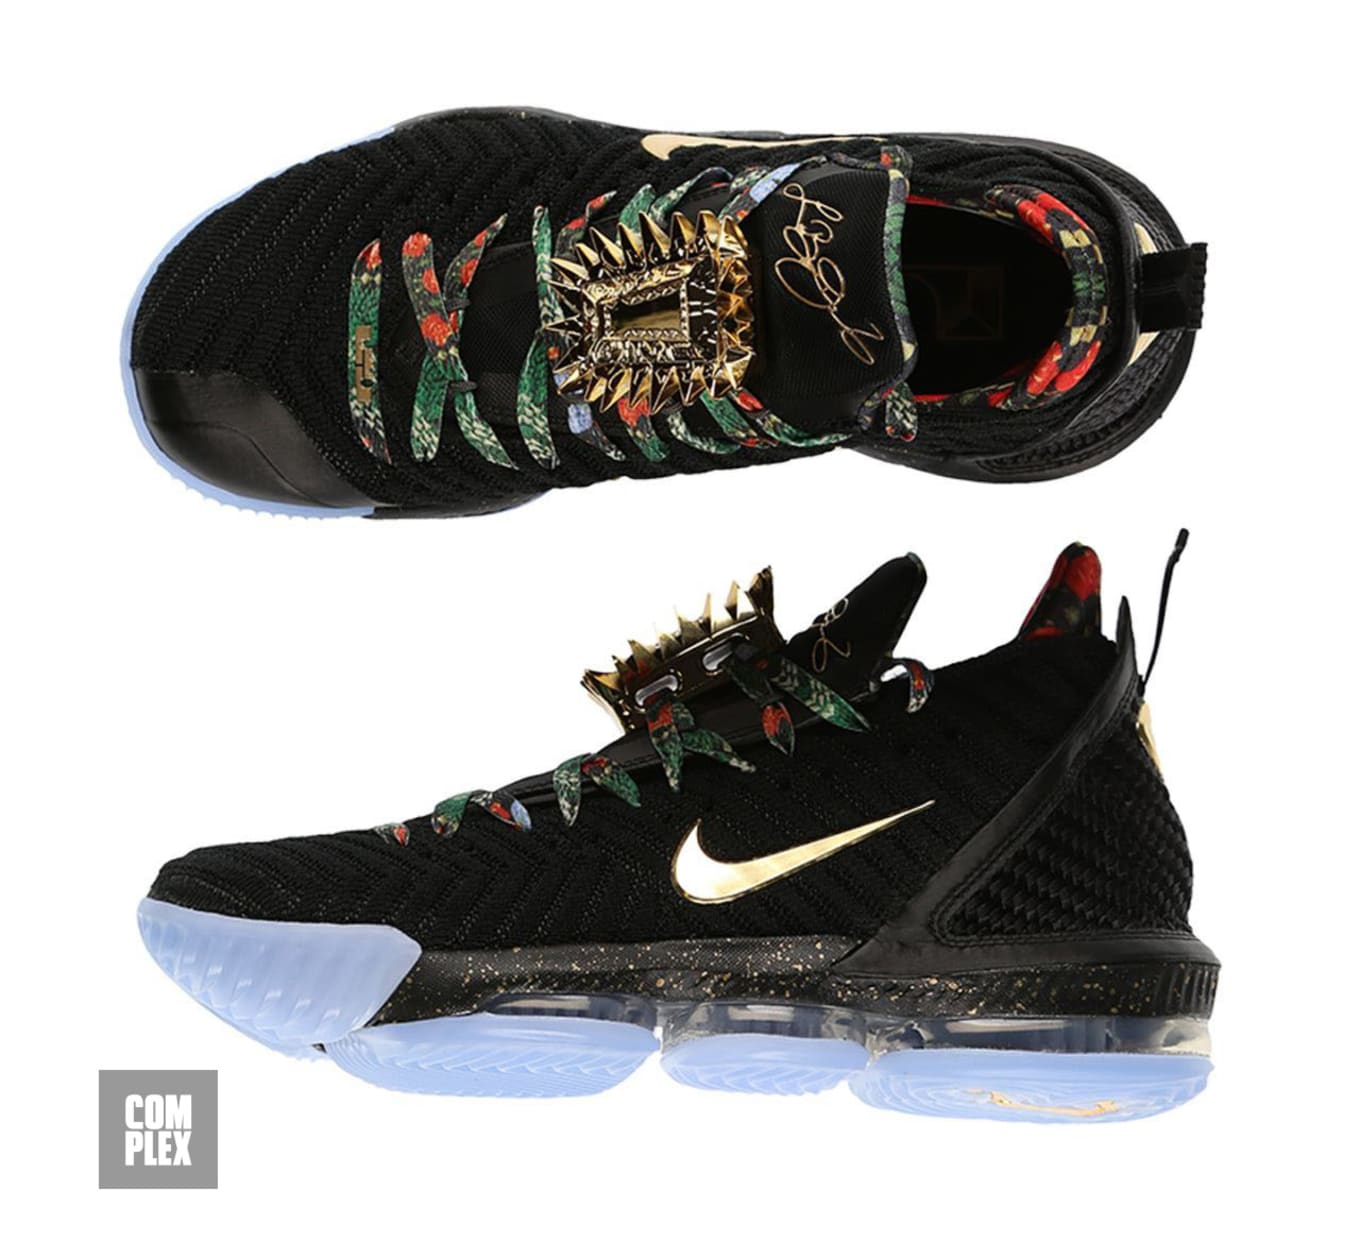 a6c2b228c5321 Nike LeBron 16 KC  Watch the Throne  Black Metallic Gold Rose Frost ...